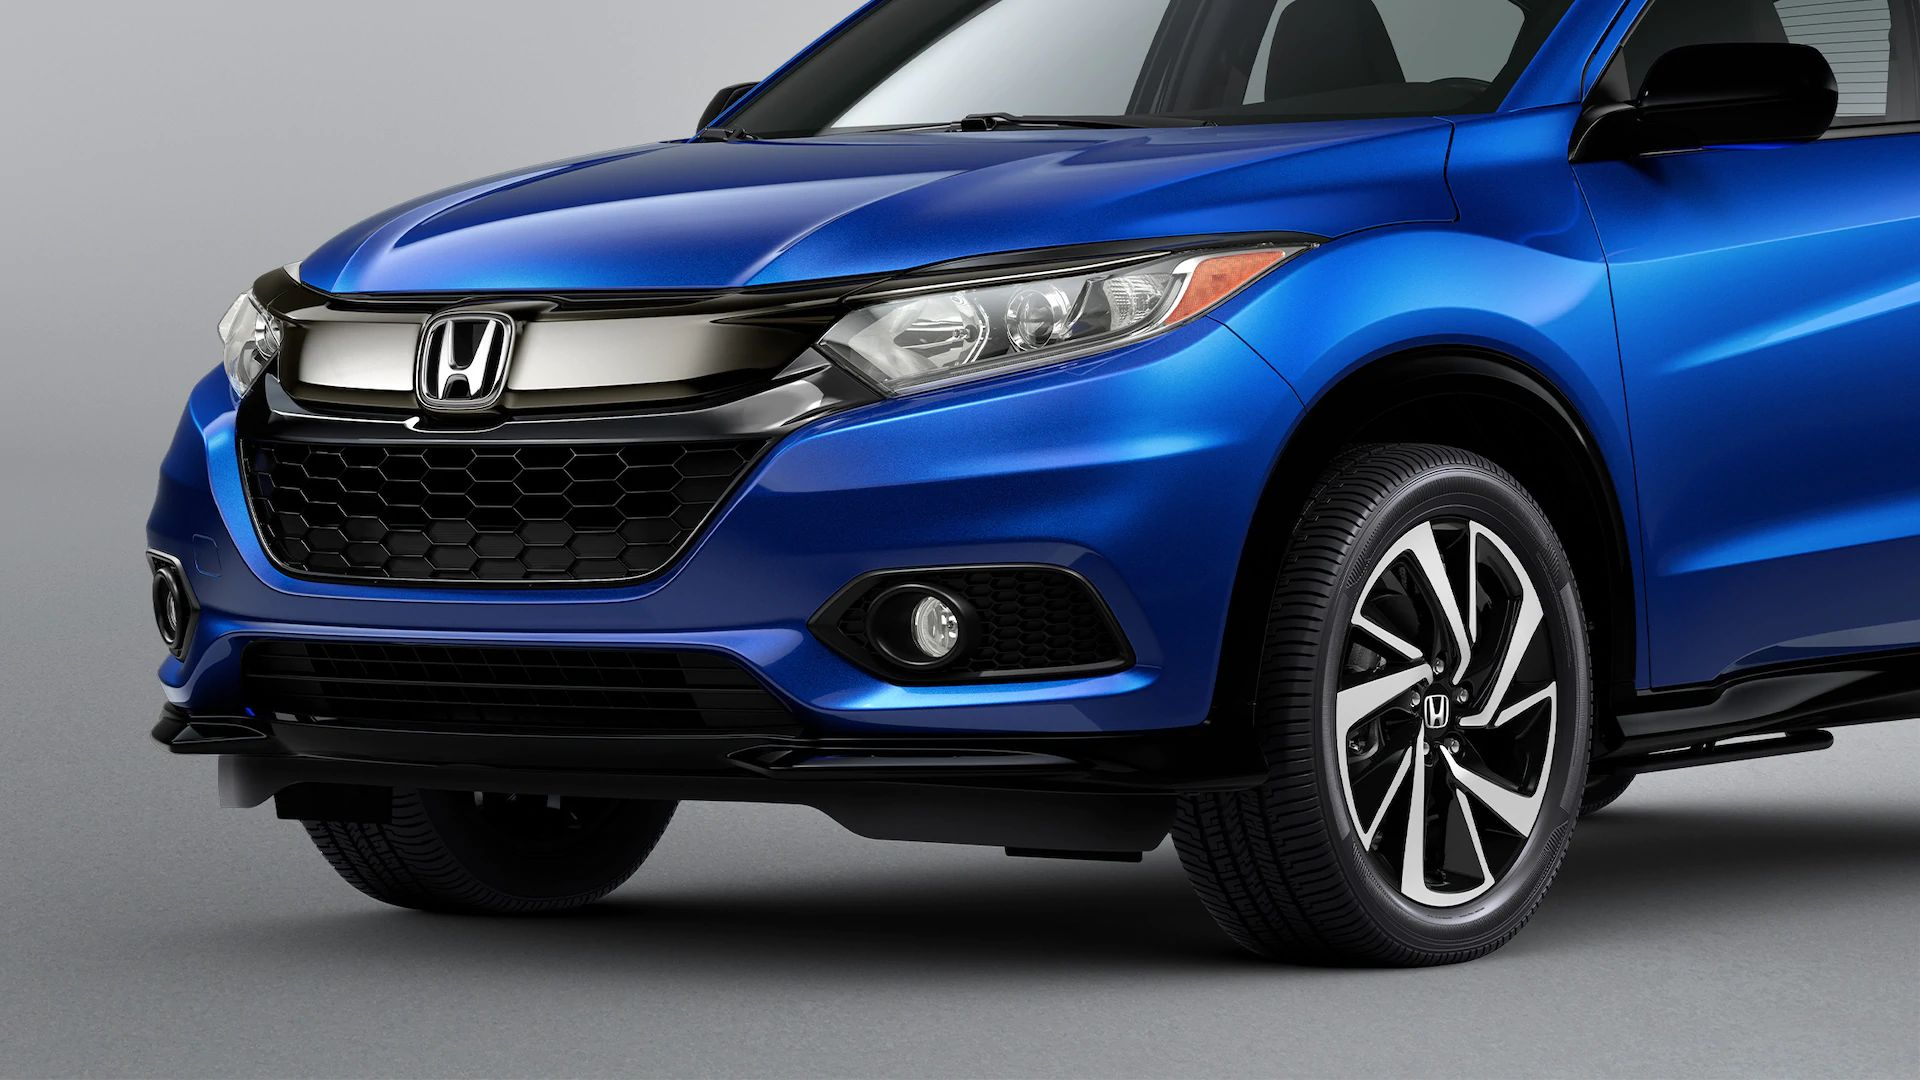 2020 Honda HR-V Safety Features